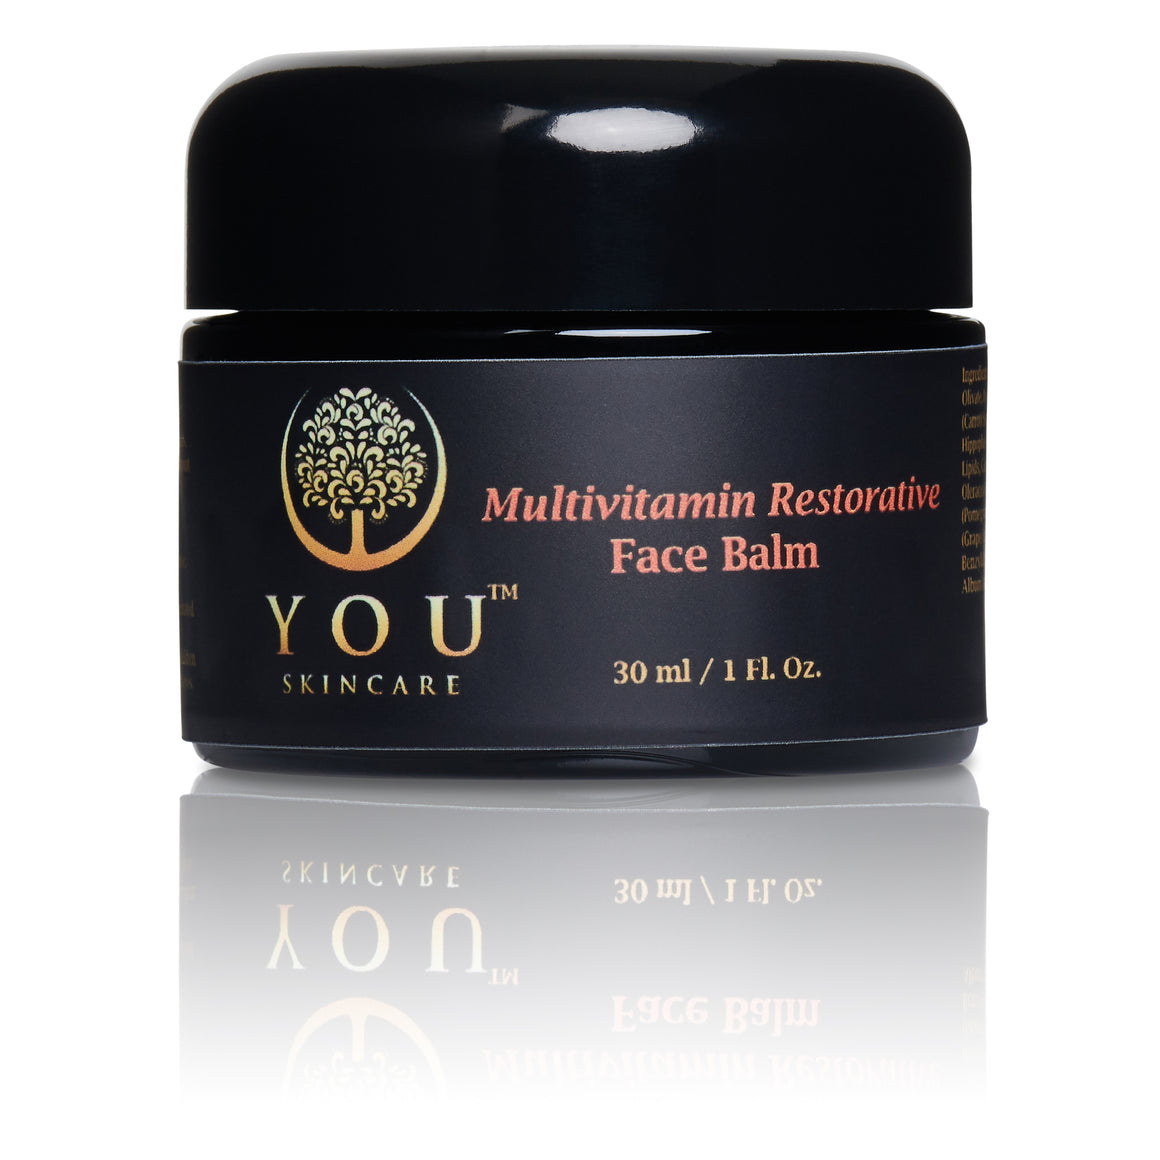 Best Retinol face balm for sensitive skin YOU skincare